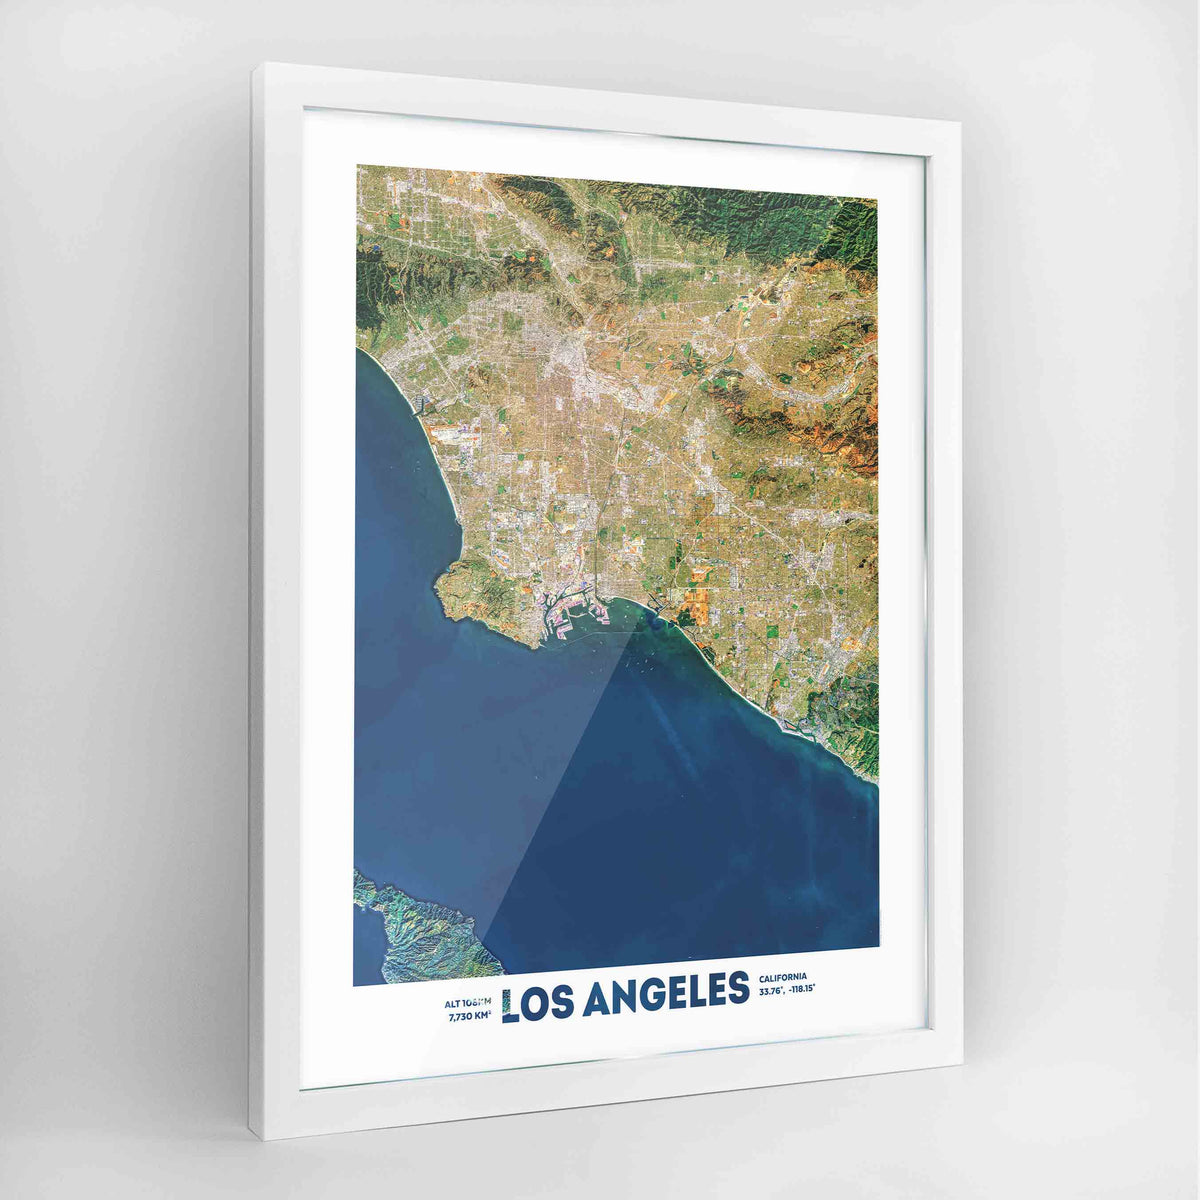 Los Angeles Earth Photography Art Print - Framed